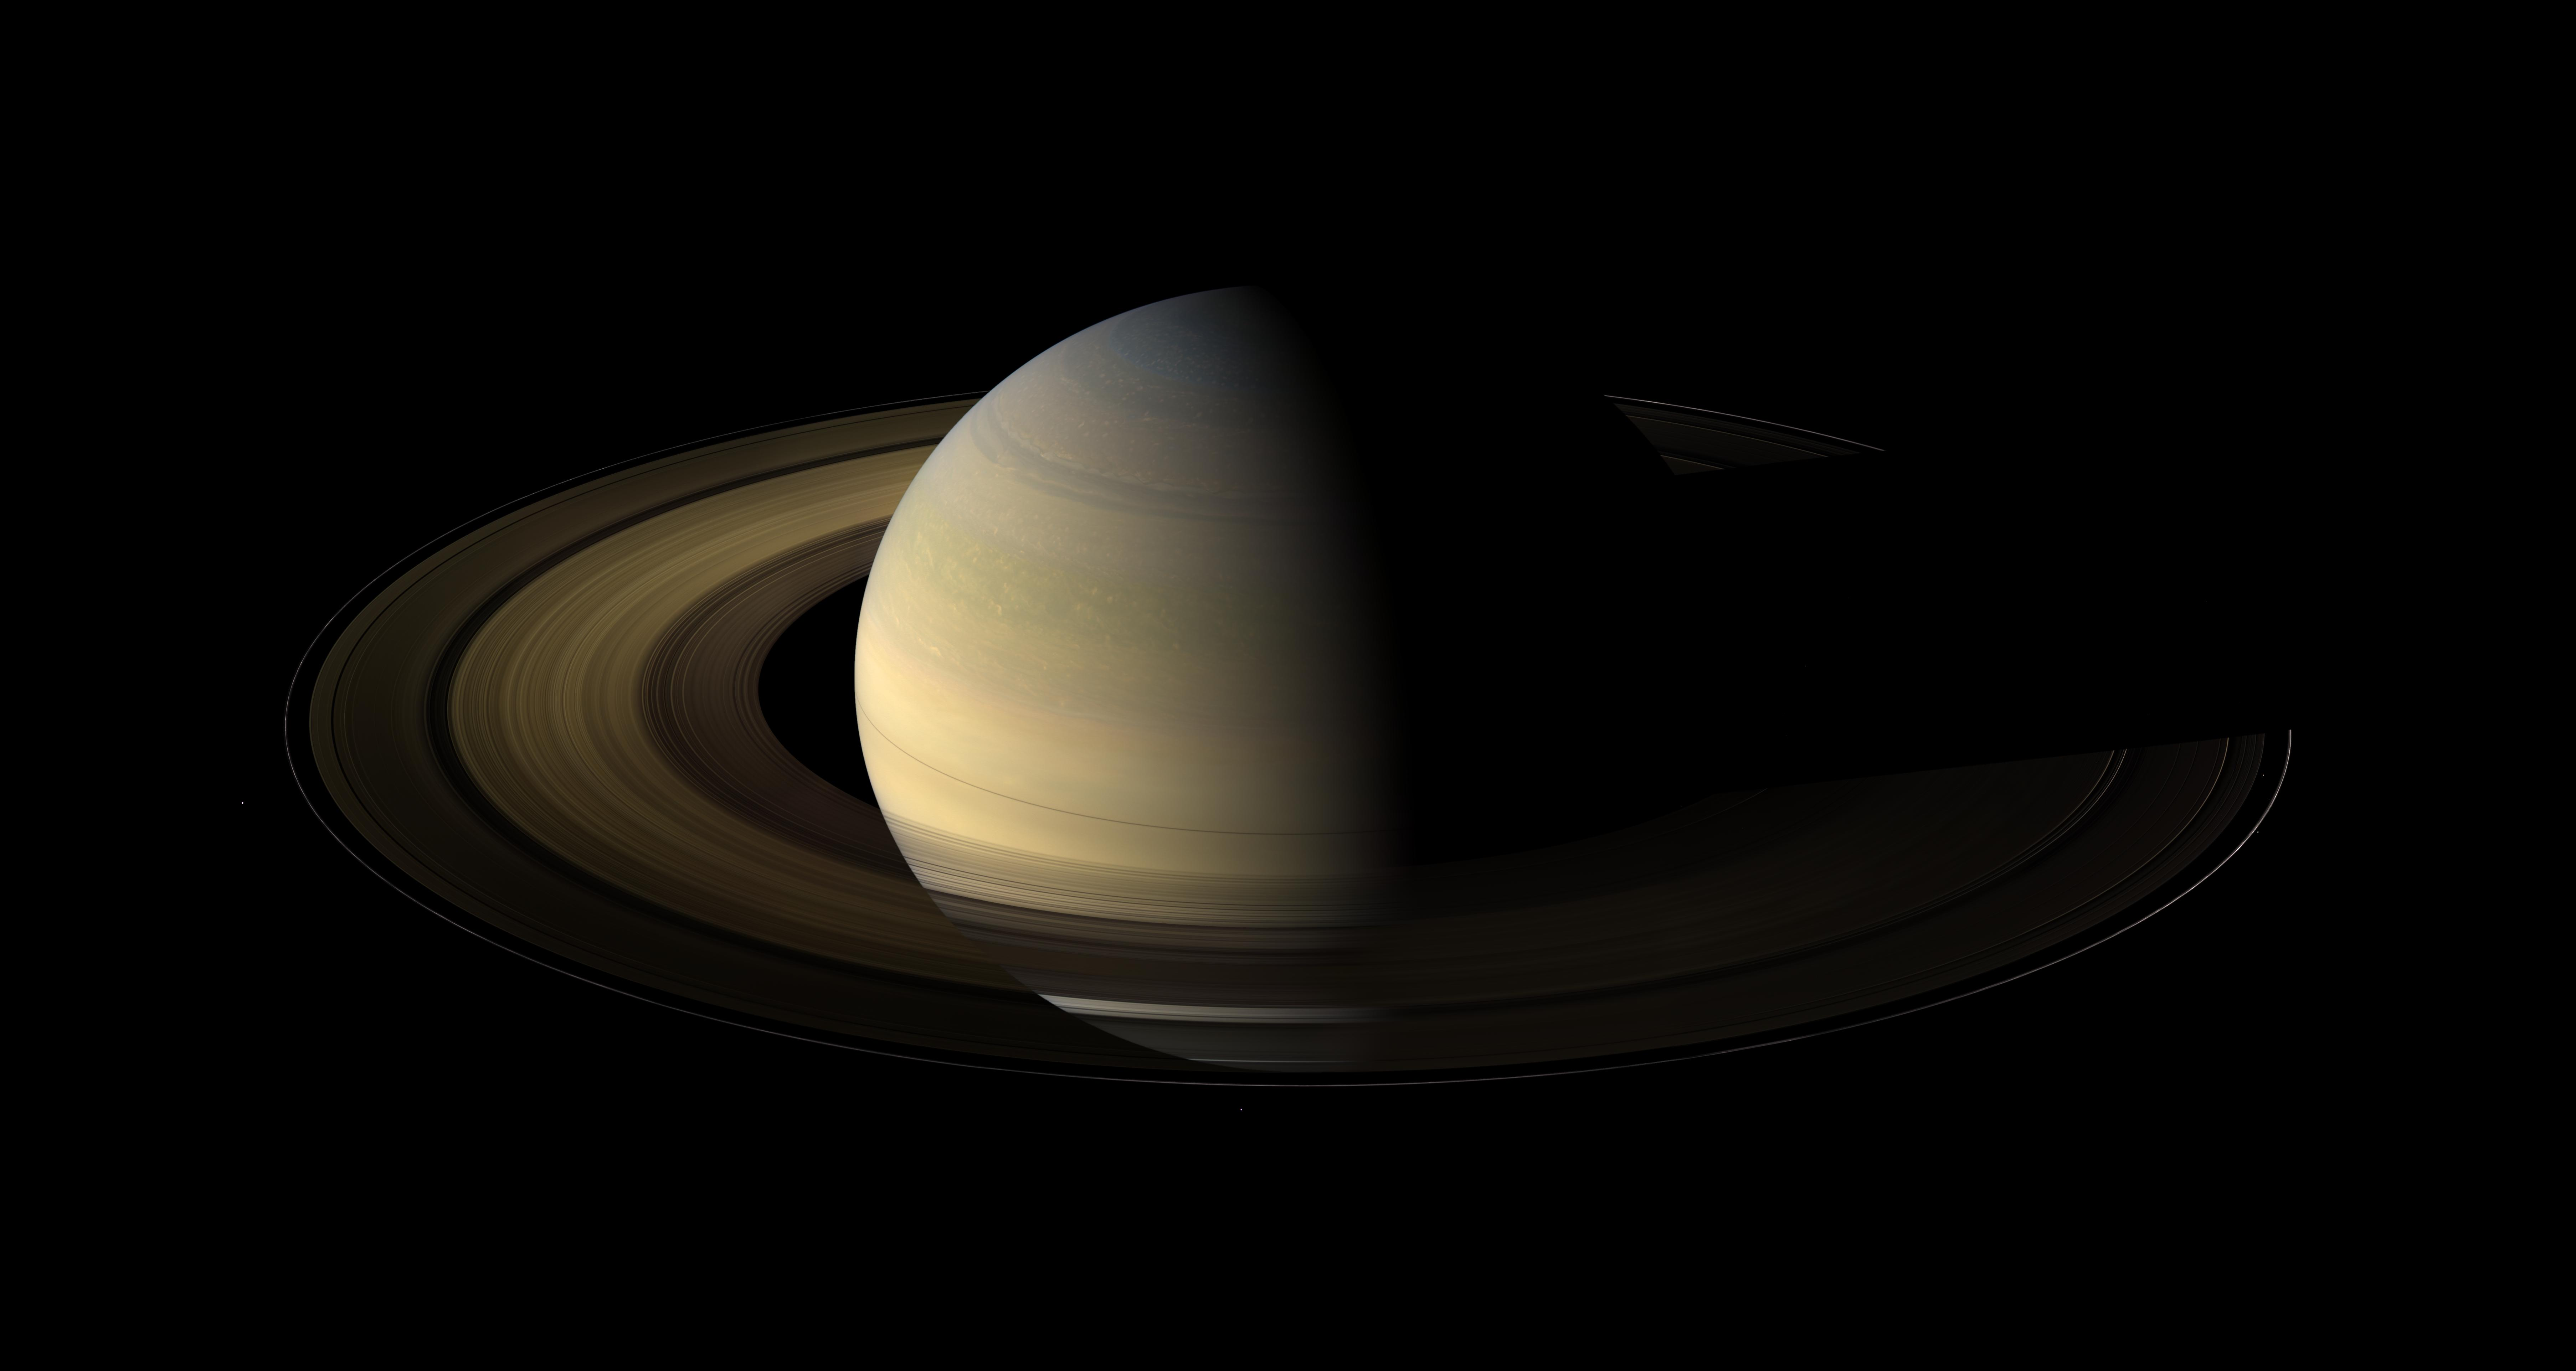 APOD: 2014 September 21 - Saturn at Equinox